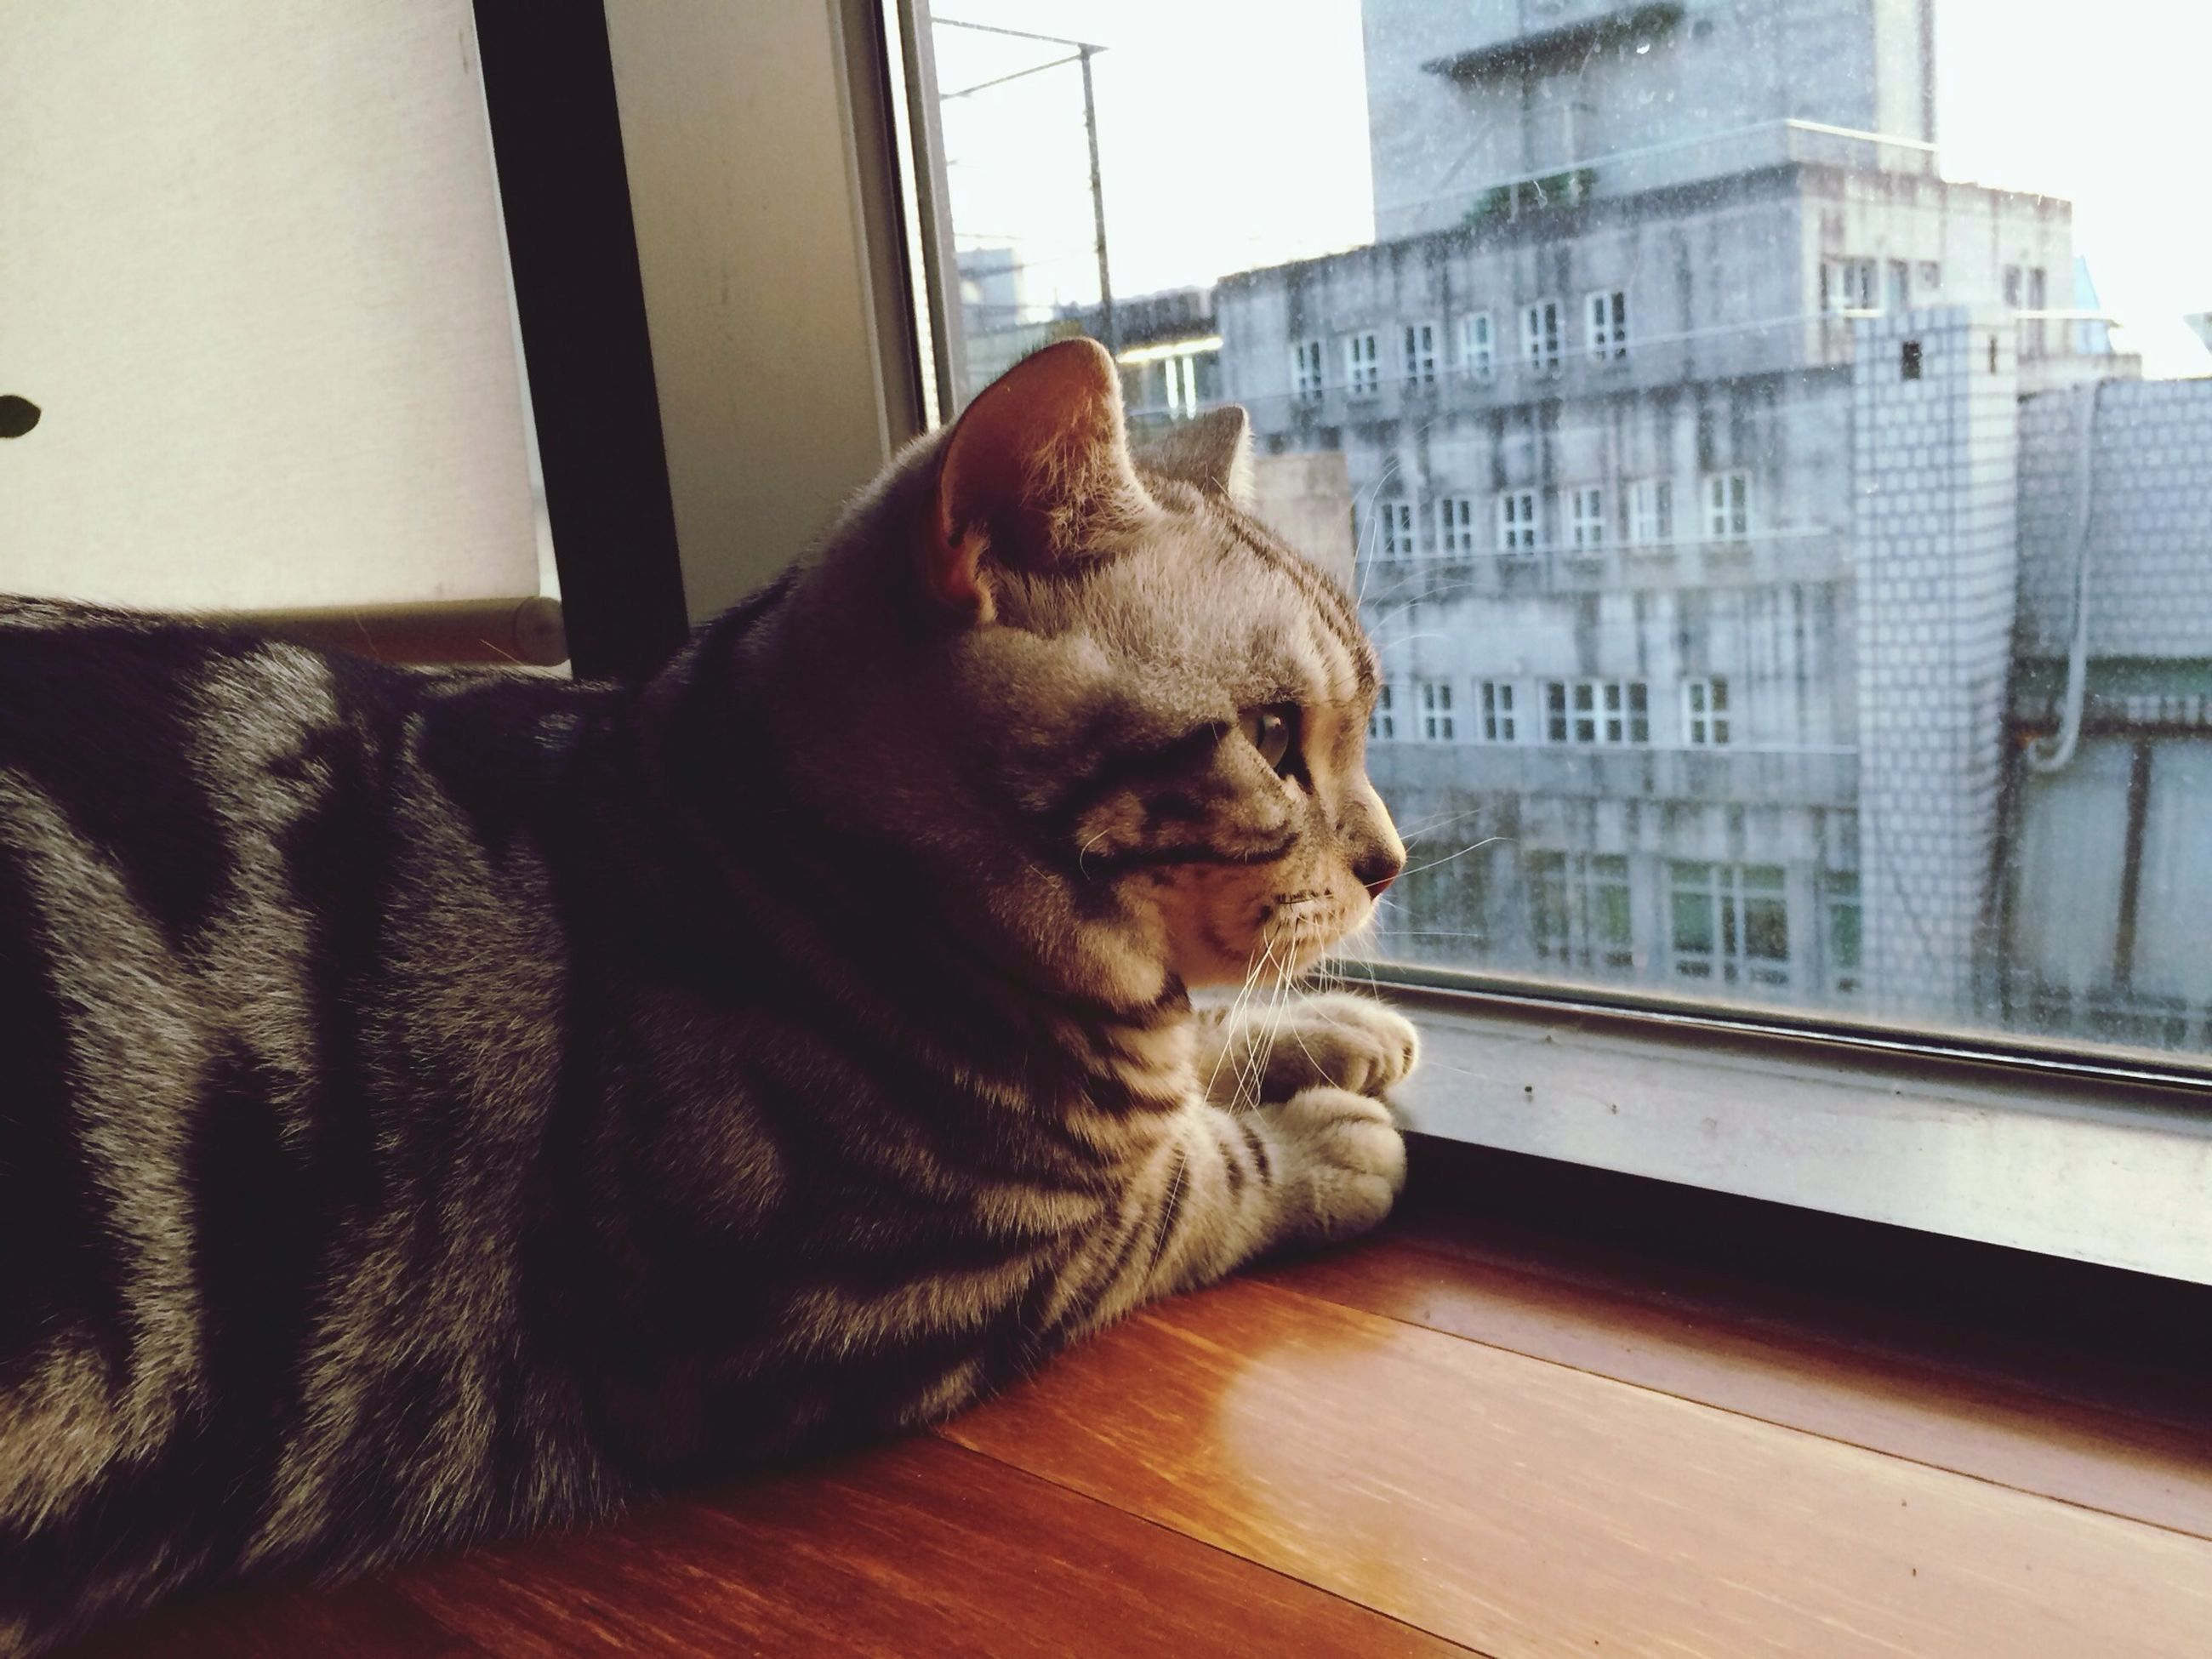 domestic animals, pets, one animal, animal themes, mammal, indoors, window, dog, animal head, domestic cat, relaxation, close-up, cat, looking through window, built structure, architecture, no people, resting, feline, building exterior